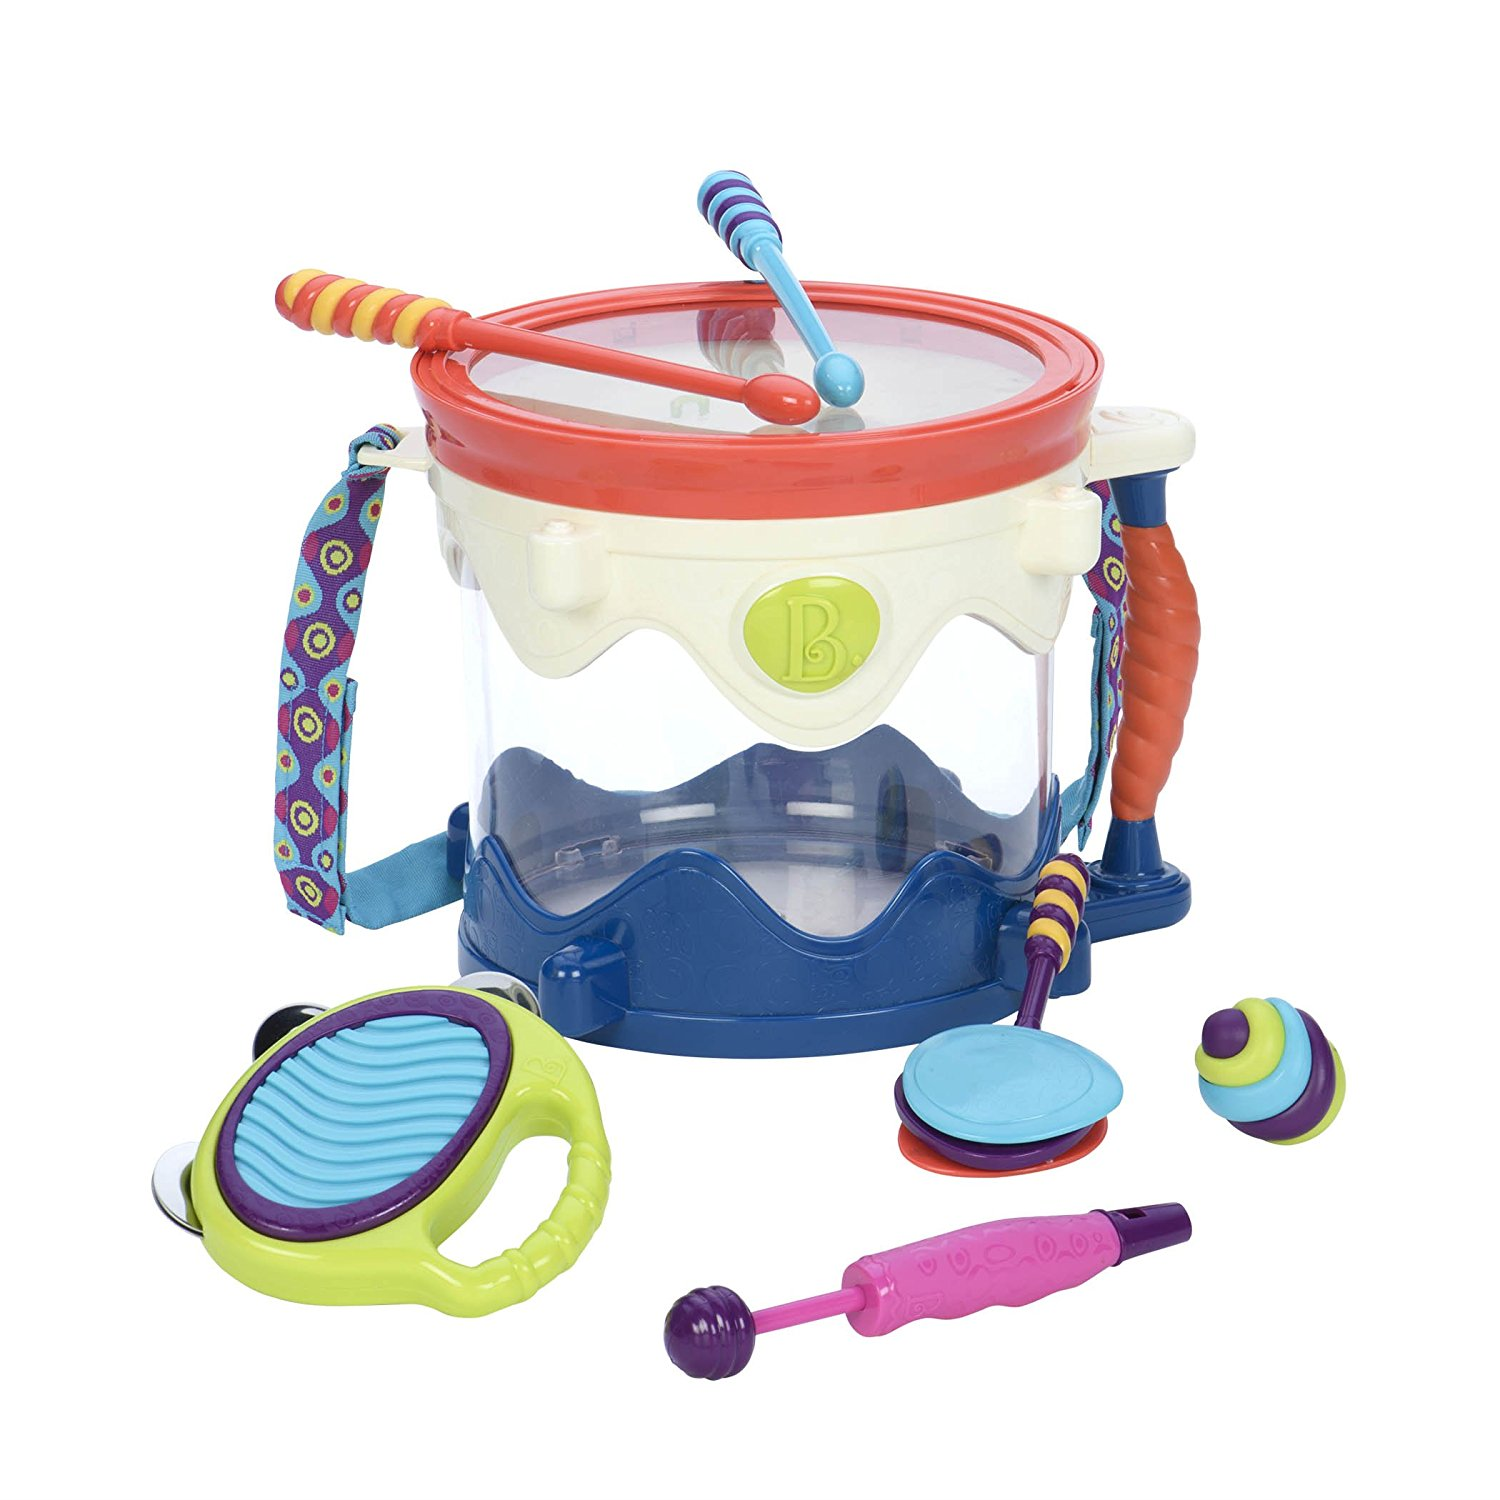 Exceptional 1 Year S Australia Toys One Year S Toys A Musical Toy Toys baby Toys For 1 Year Olds